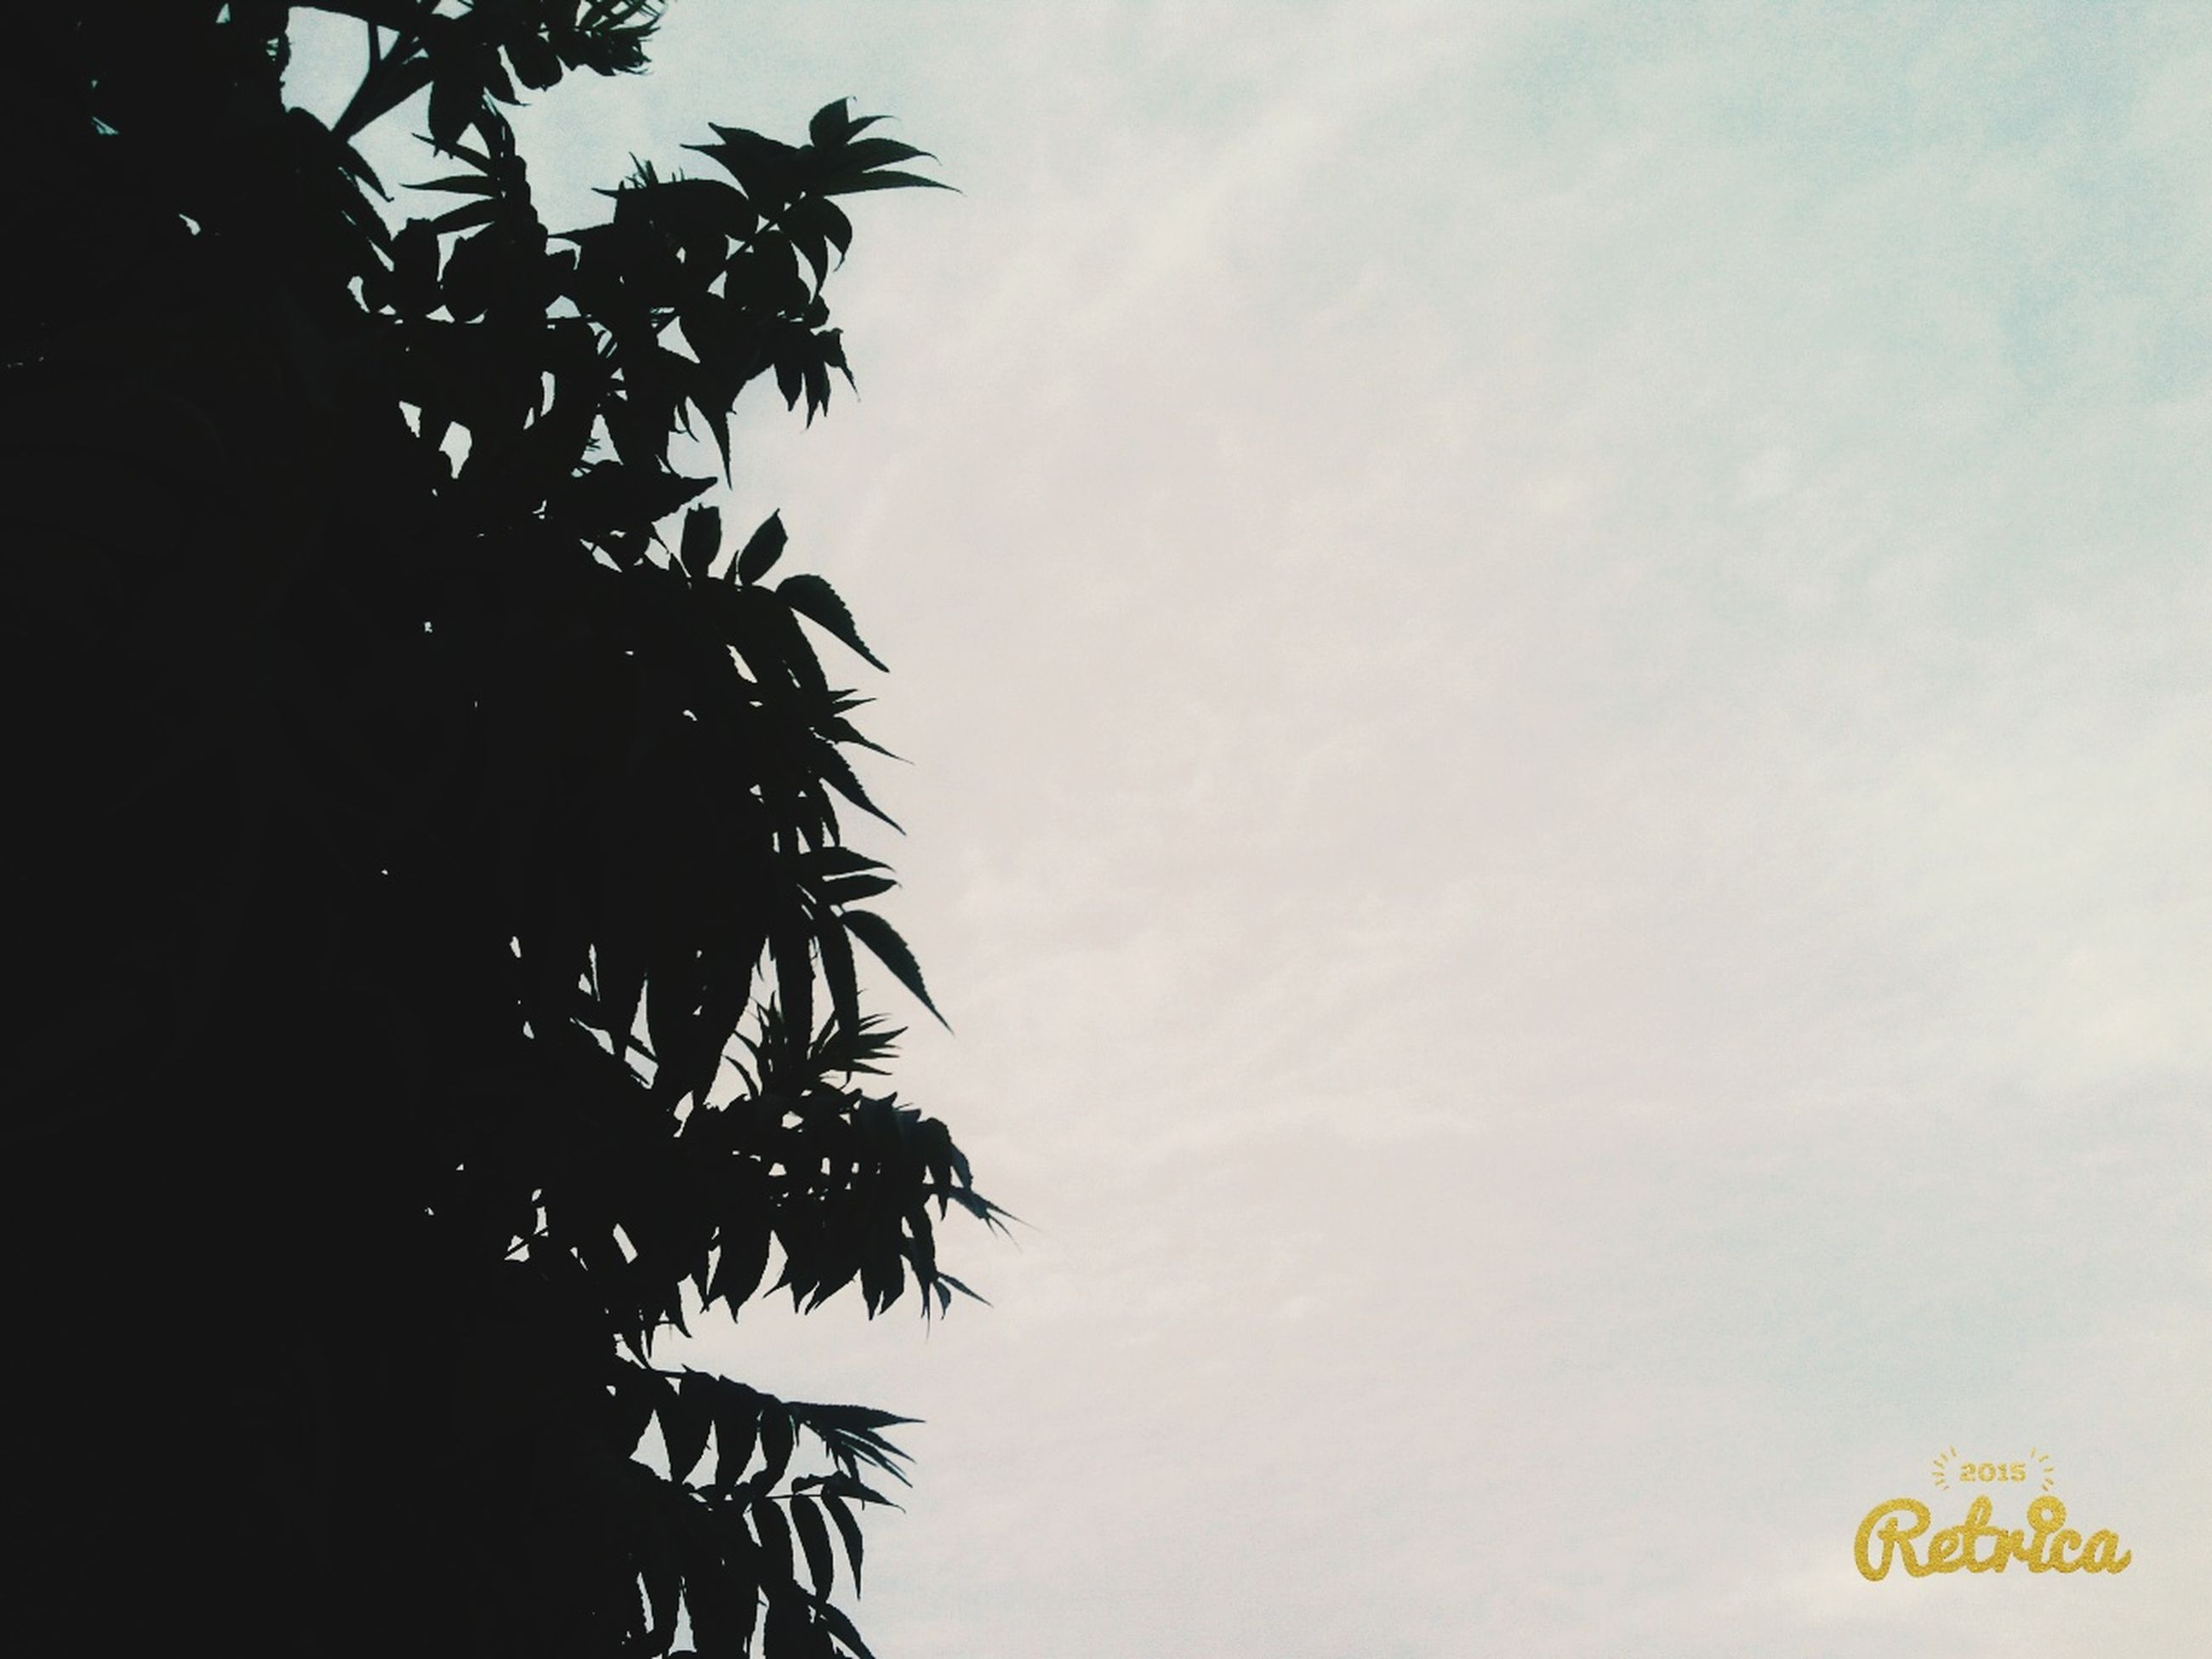 tree, low angle view, sky, branch, growth, tranquility, nature, beauty in nature, leaf, silhouette, scenics, high section, tranquil scene, no people, outdoors, day, clear sky, treetop, cloud, cloud - sky